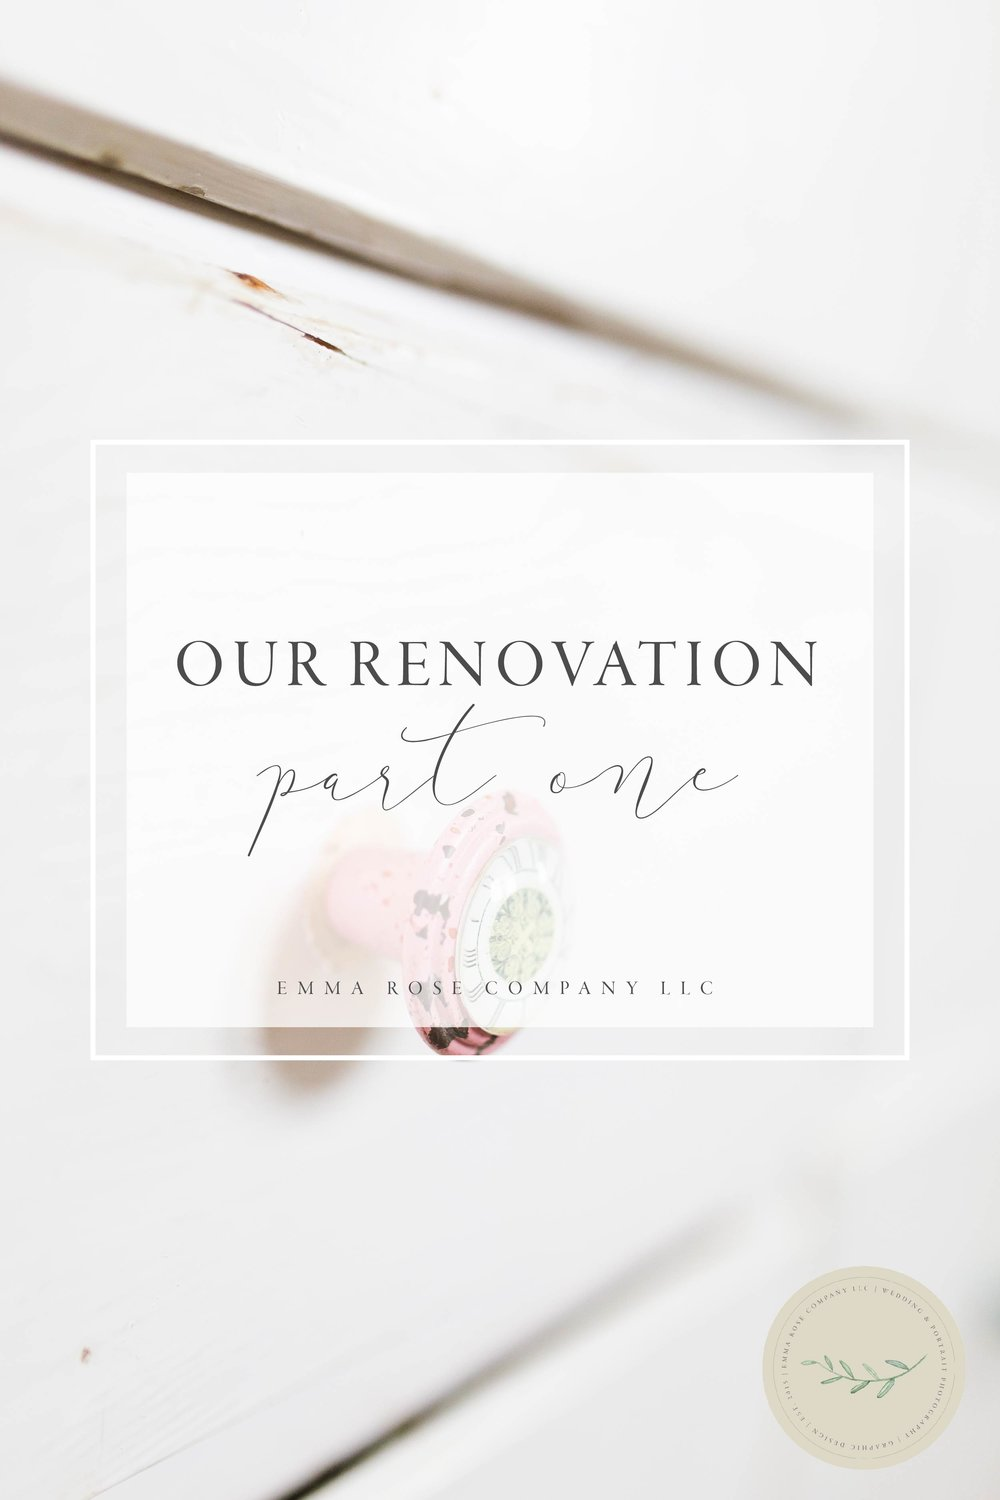 Emma Rose Company home renovation | DIY House renovation project